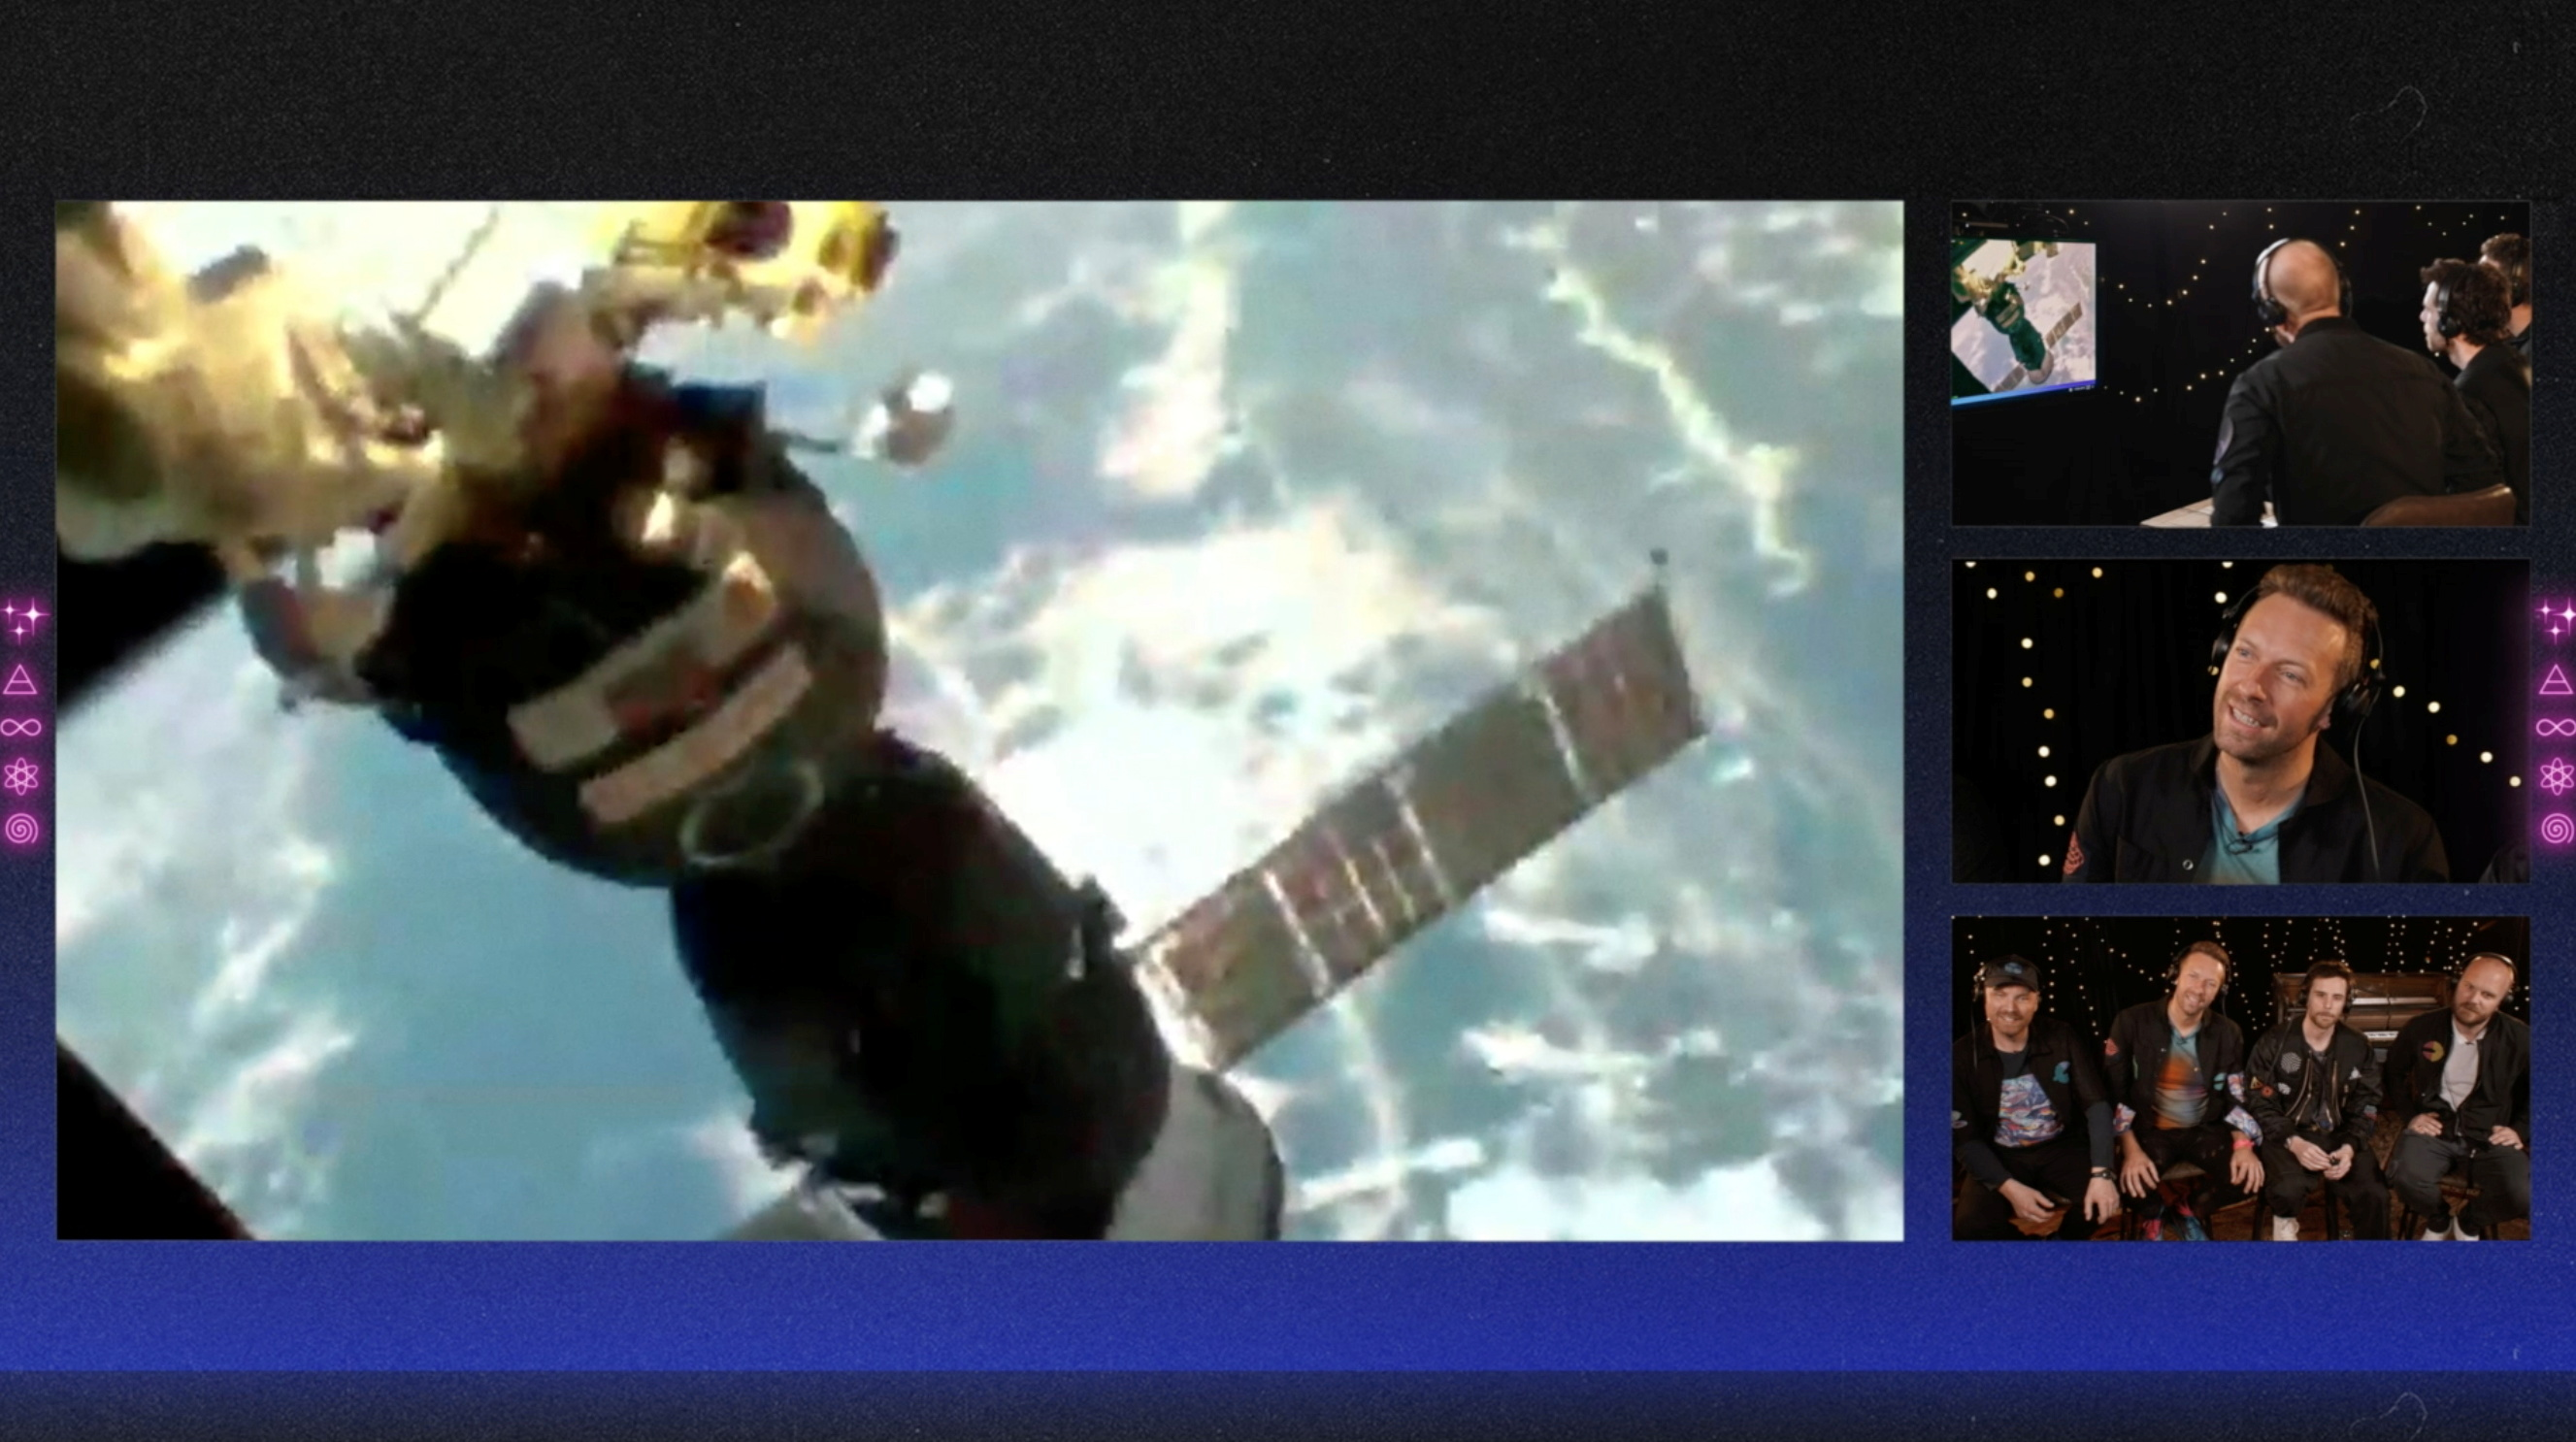 Members of Coldplay watch the view from the window of International Space Station during an interview with French ESA astronaut Thomas Pesquet (not pictured), in this still image from an undated handout video obtained by REUTERS on May 6, 2021. Coldplay/Handout via REUTERS